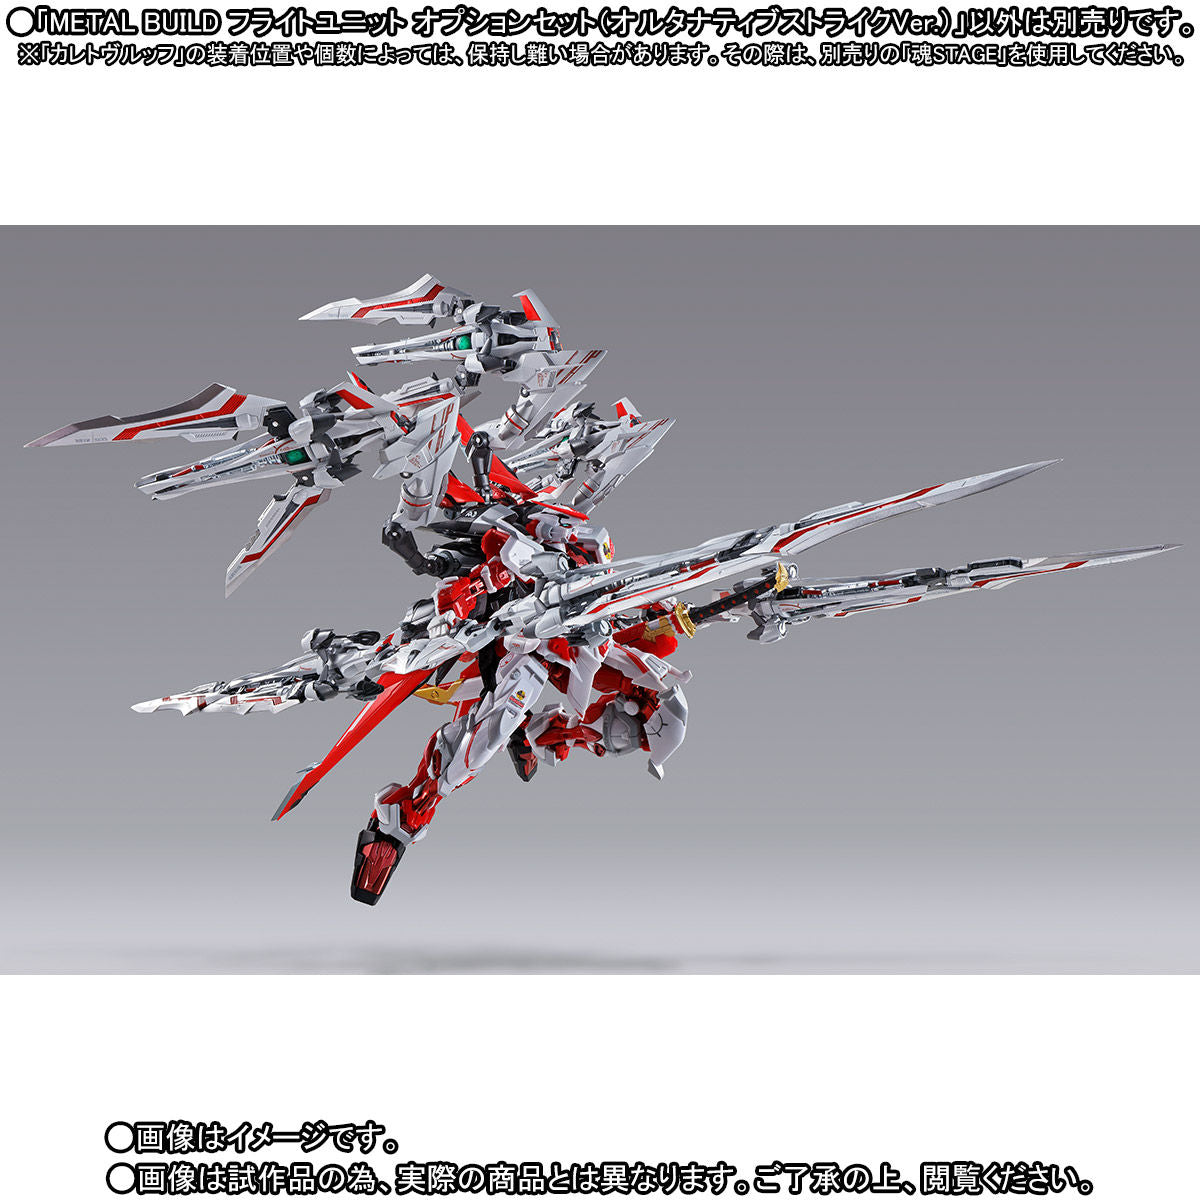 P-BANDAI: METAL BUILD FLIGHT UNIT **PARTS ONLY** [End of January 2020]